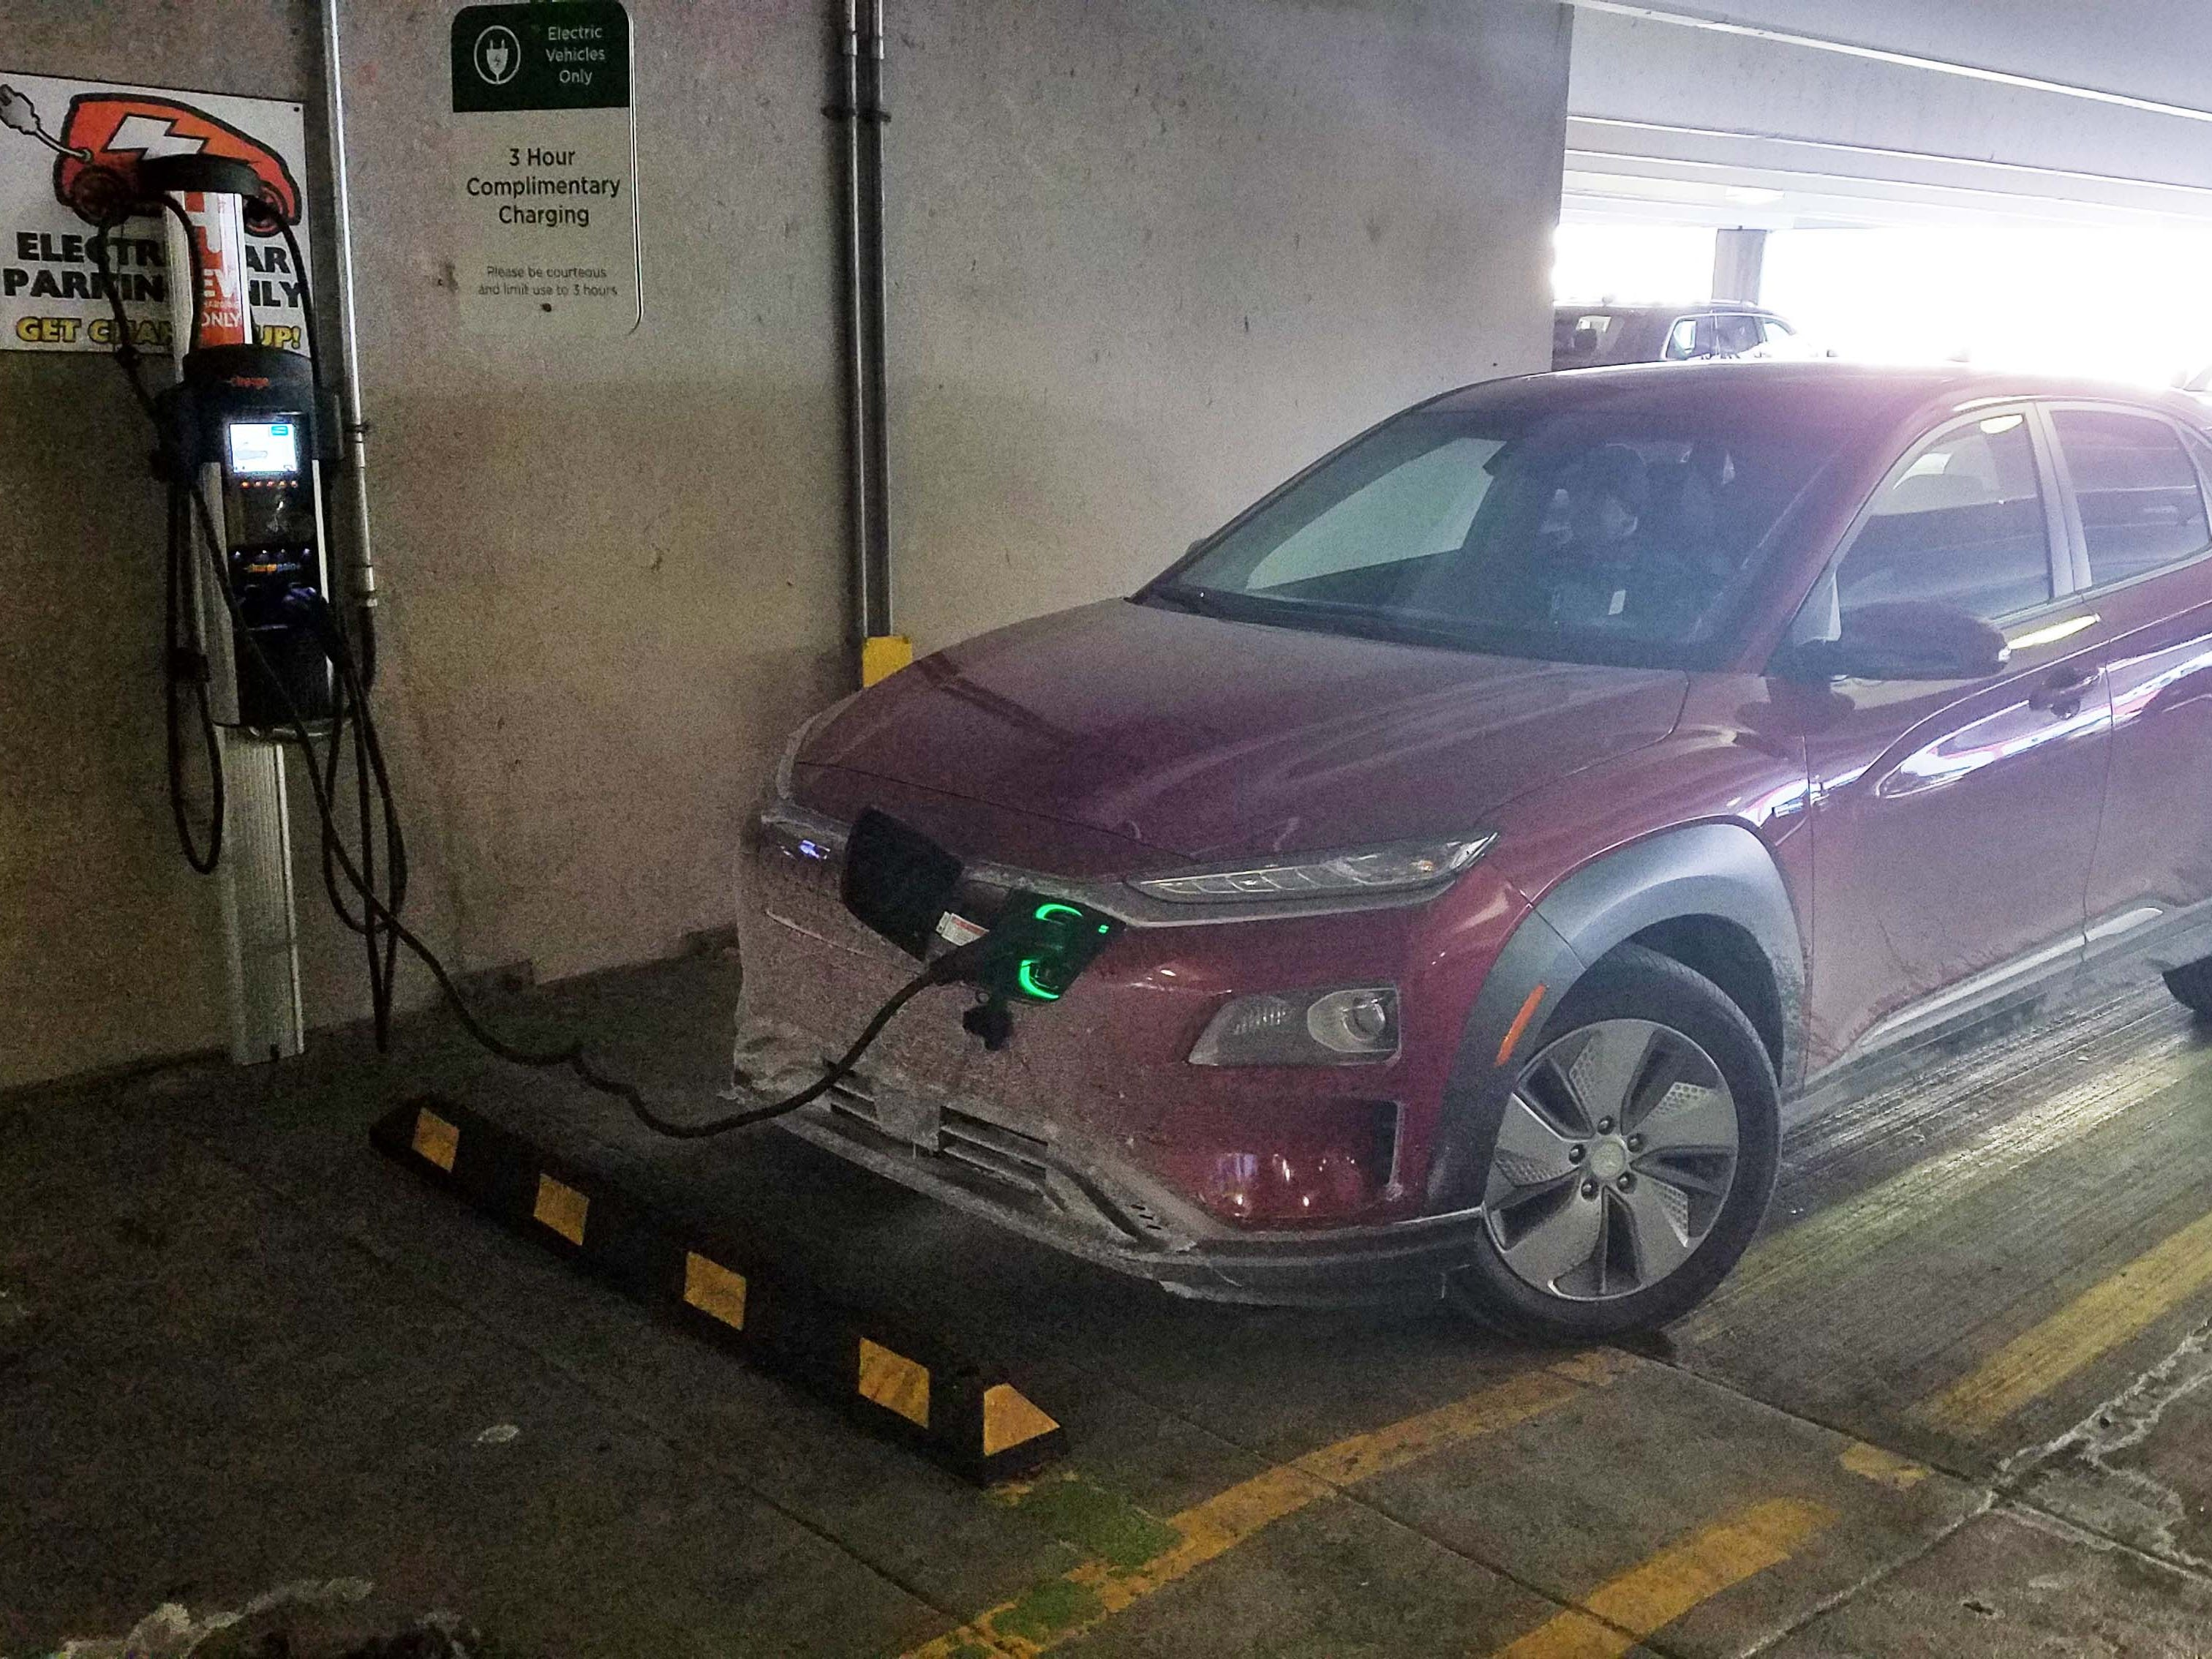 In two hours on a 240-volt public charger, the 2019 Hyundai Kona EV gained just 48 miles — which was quickly used up on a 28-mile commute that ate up 2 miles of range for every mile traveled.